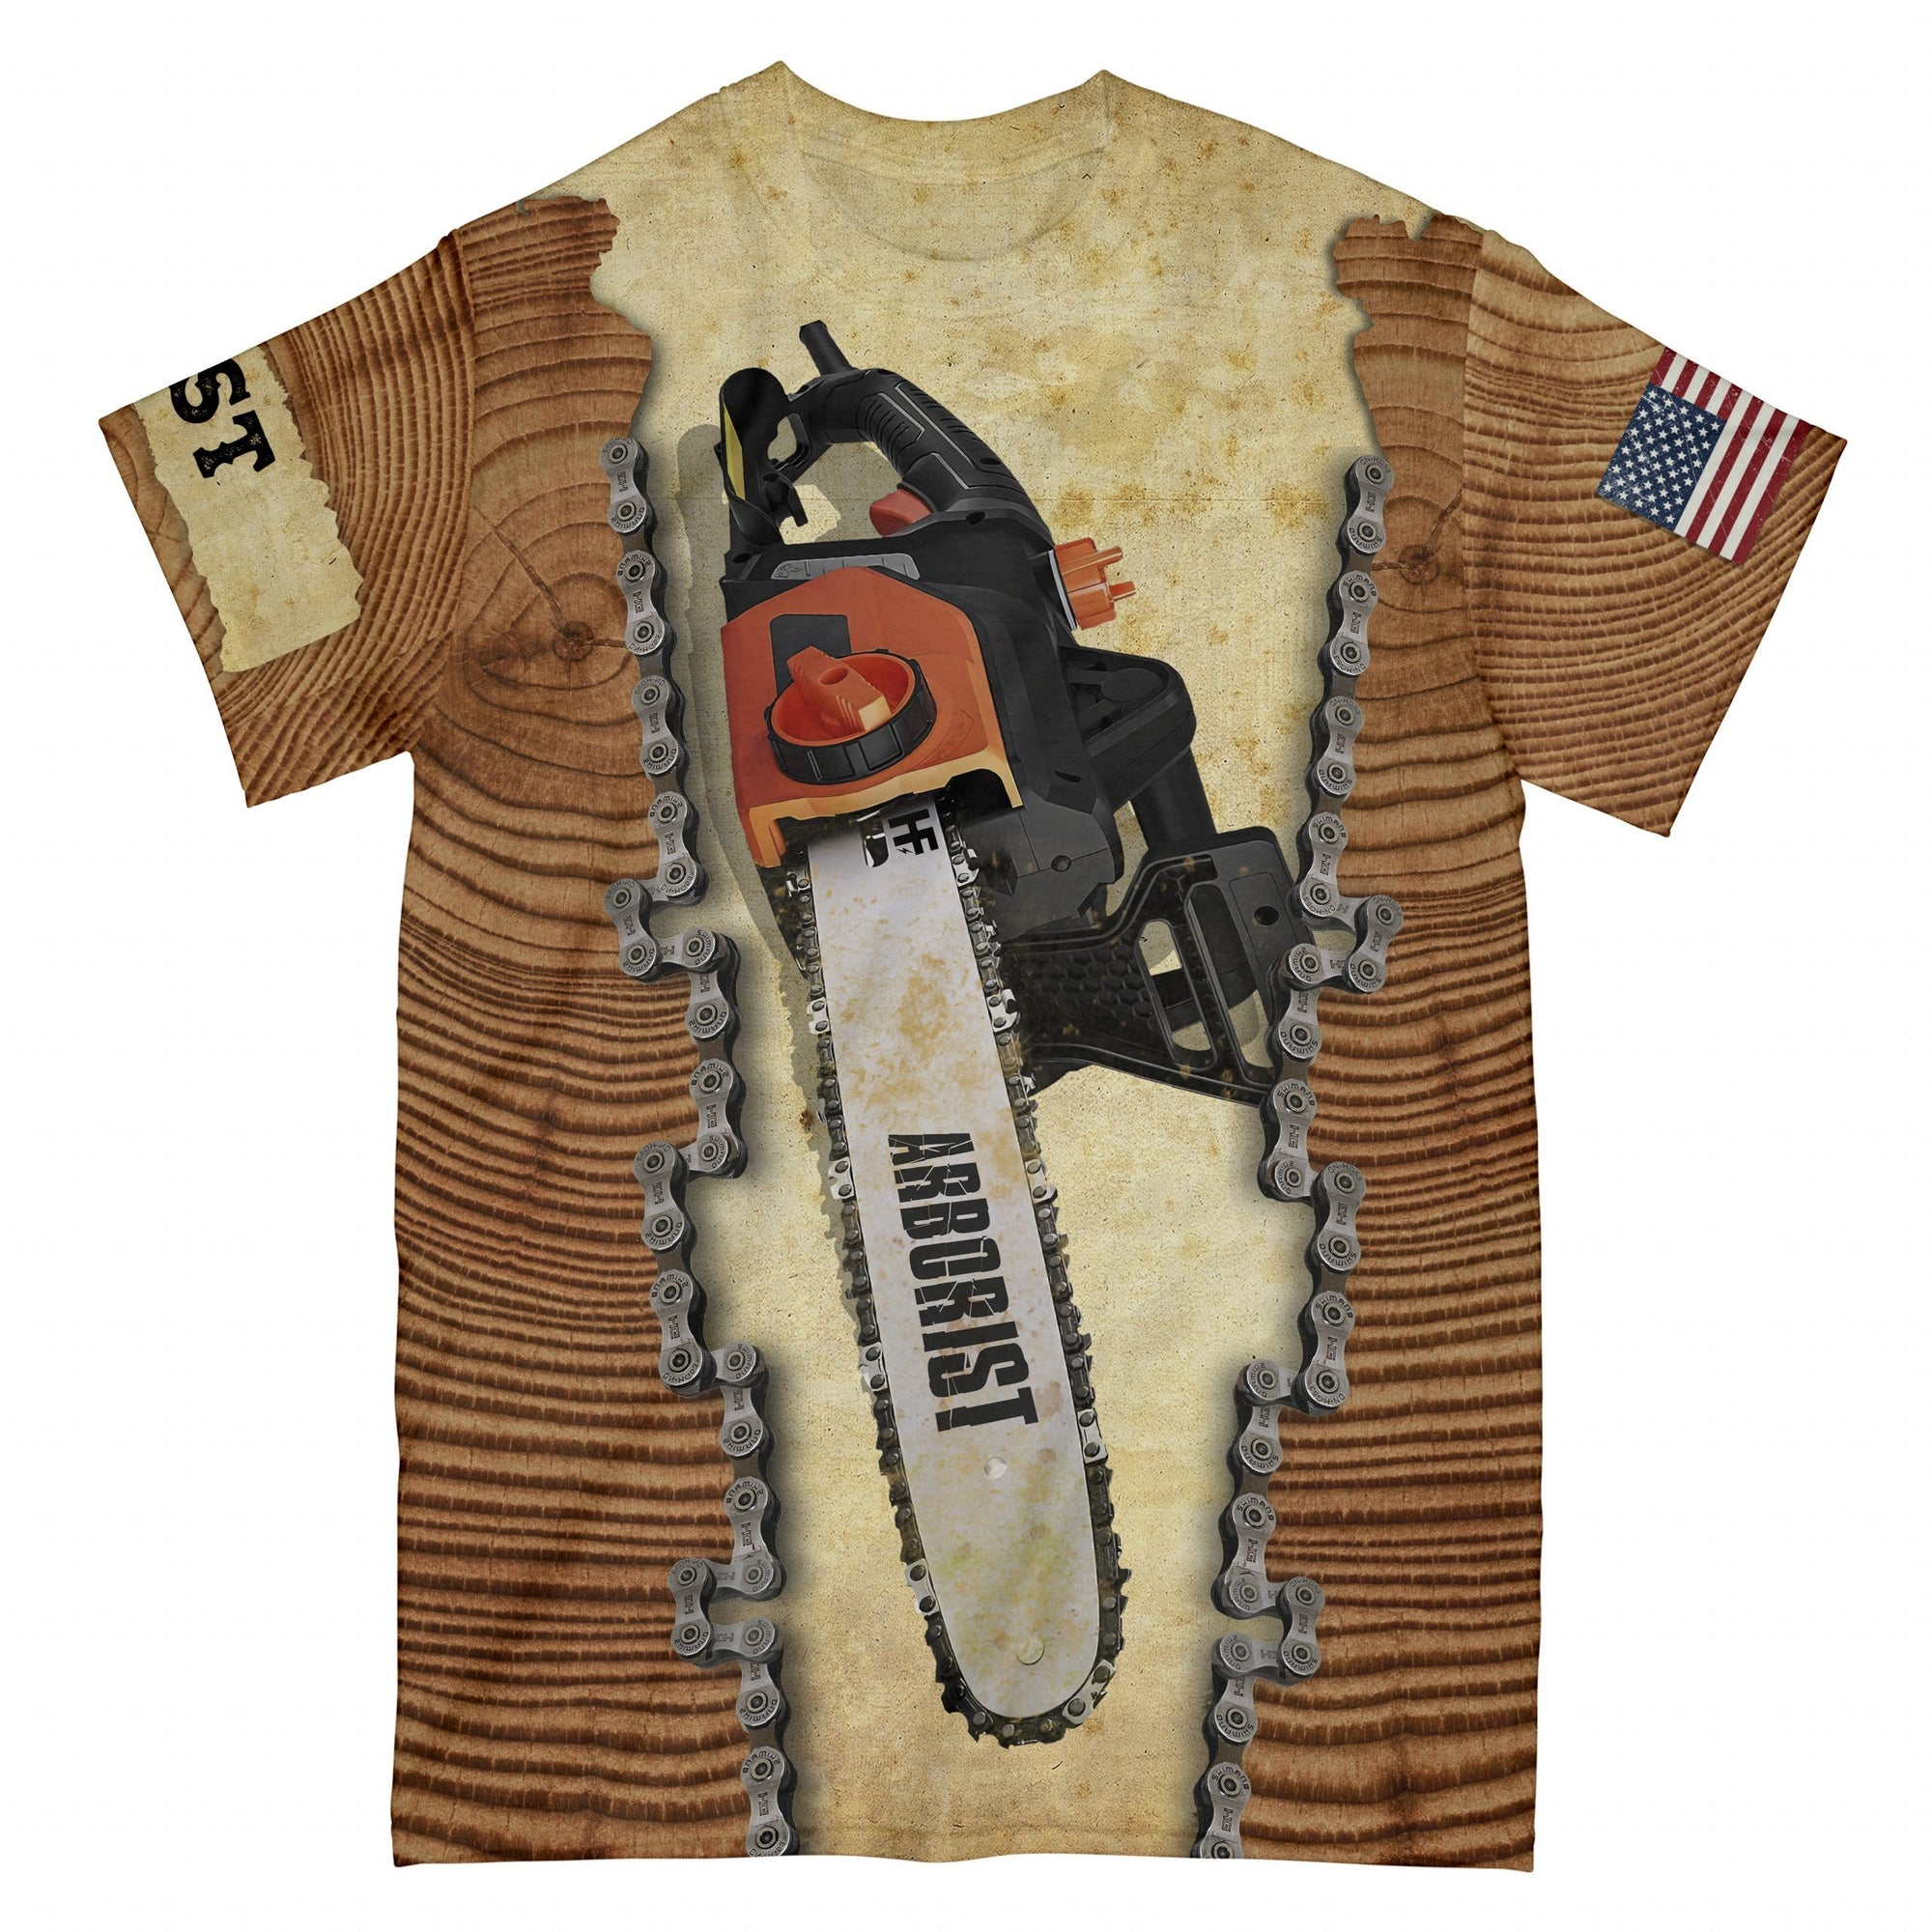 Chain Saw EZ15 2508 All Over T-Shirt